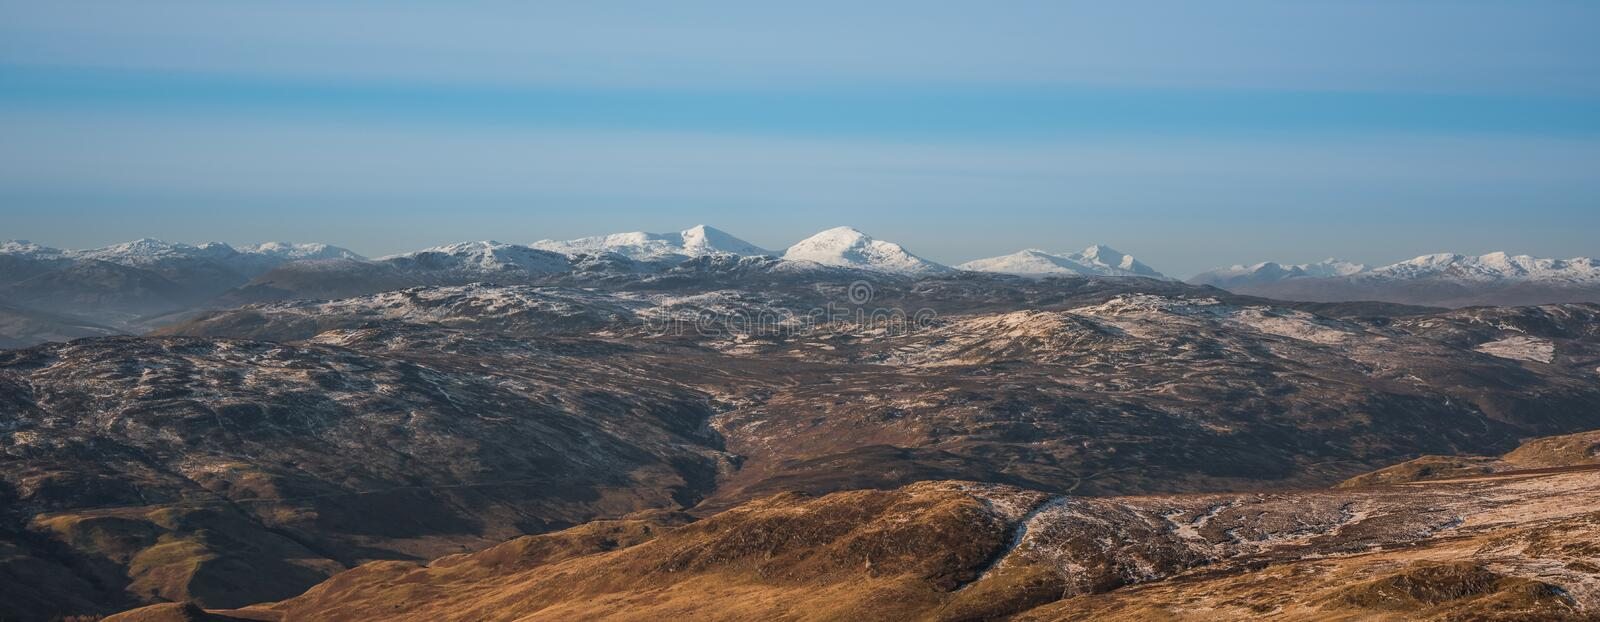 First snow in mountains - Cairngorm National Park in Scotland stock images